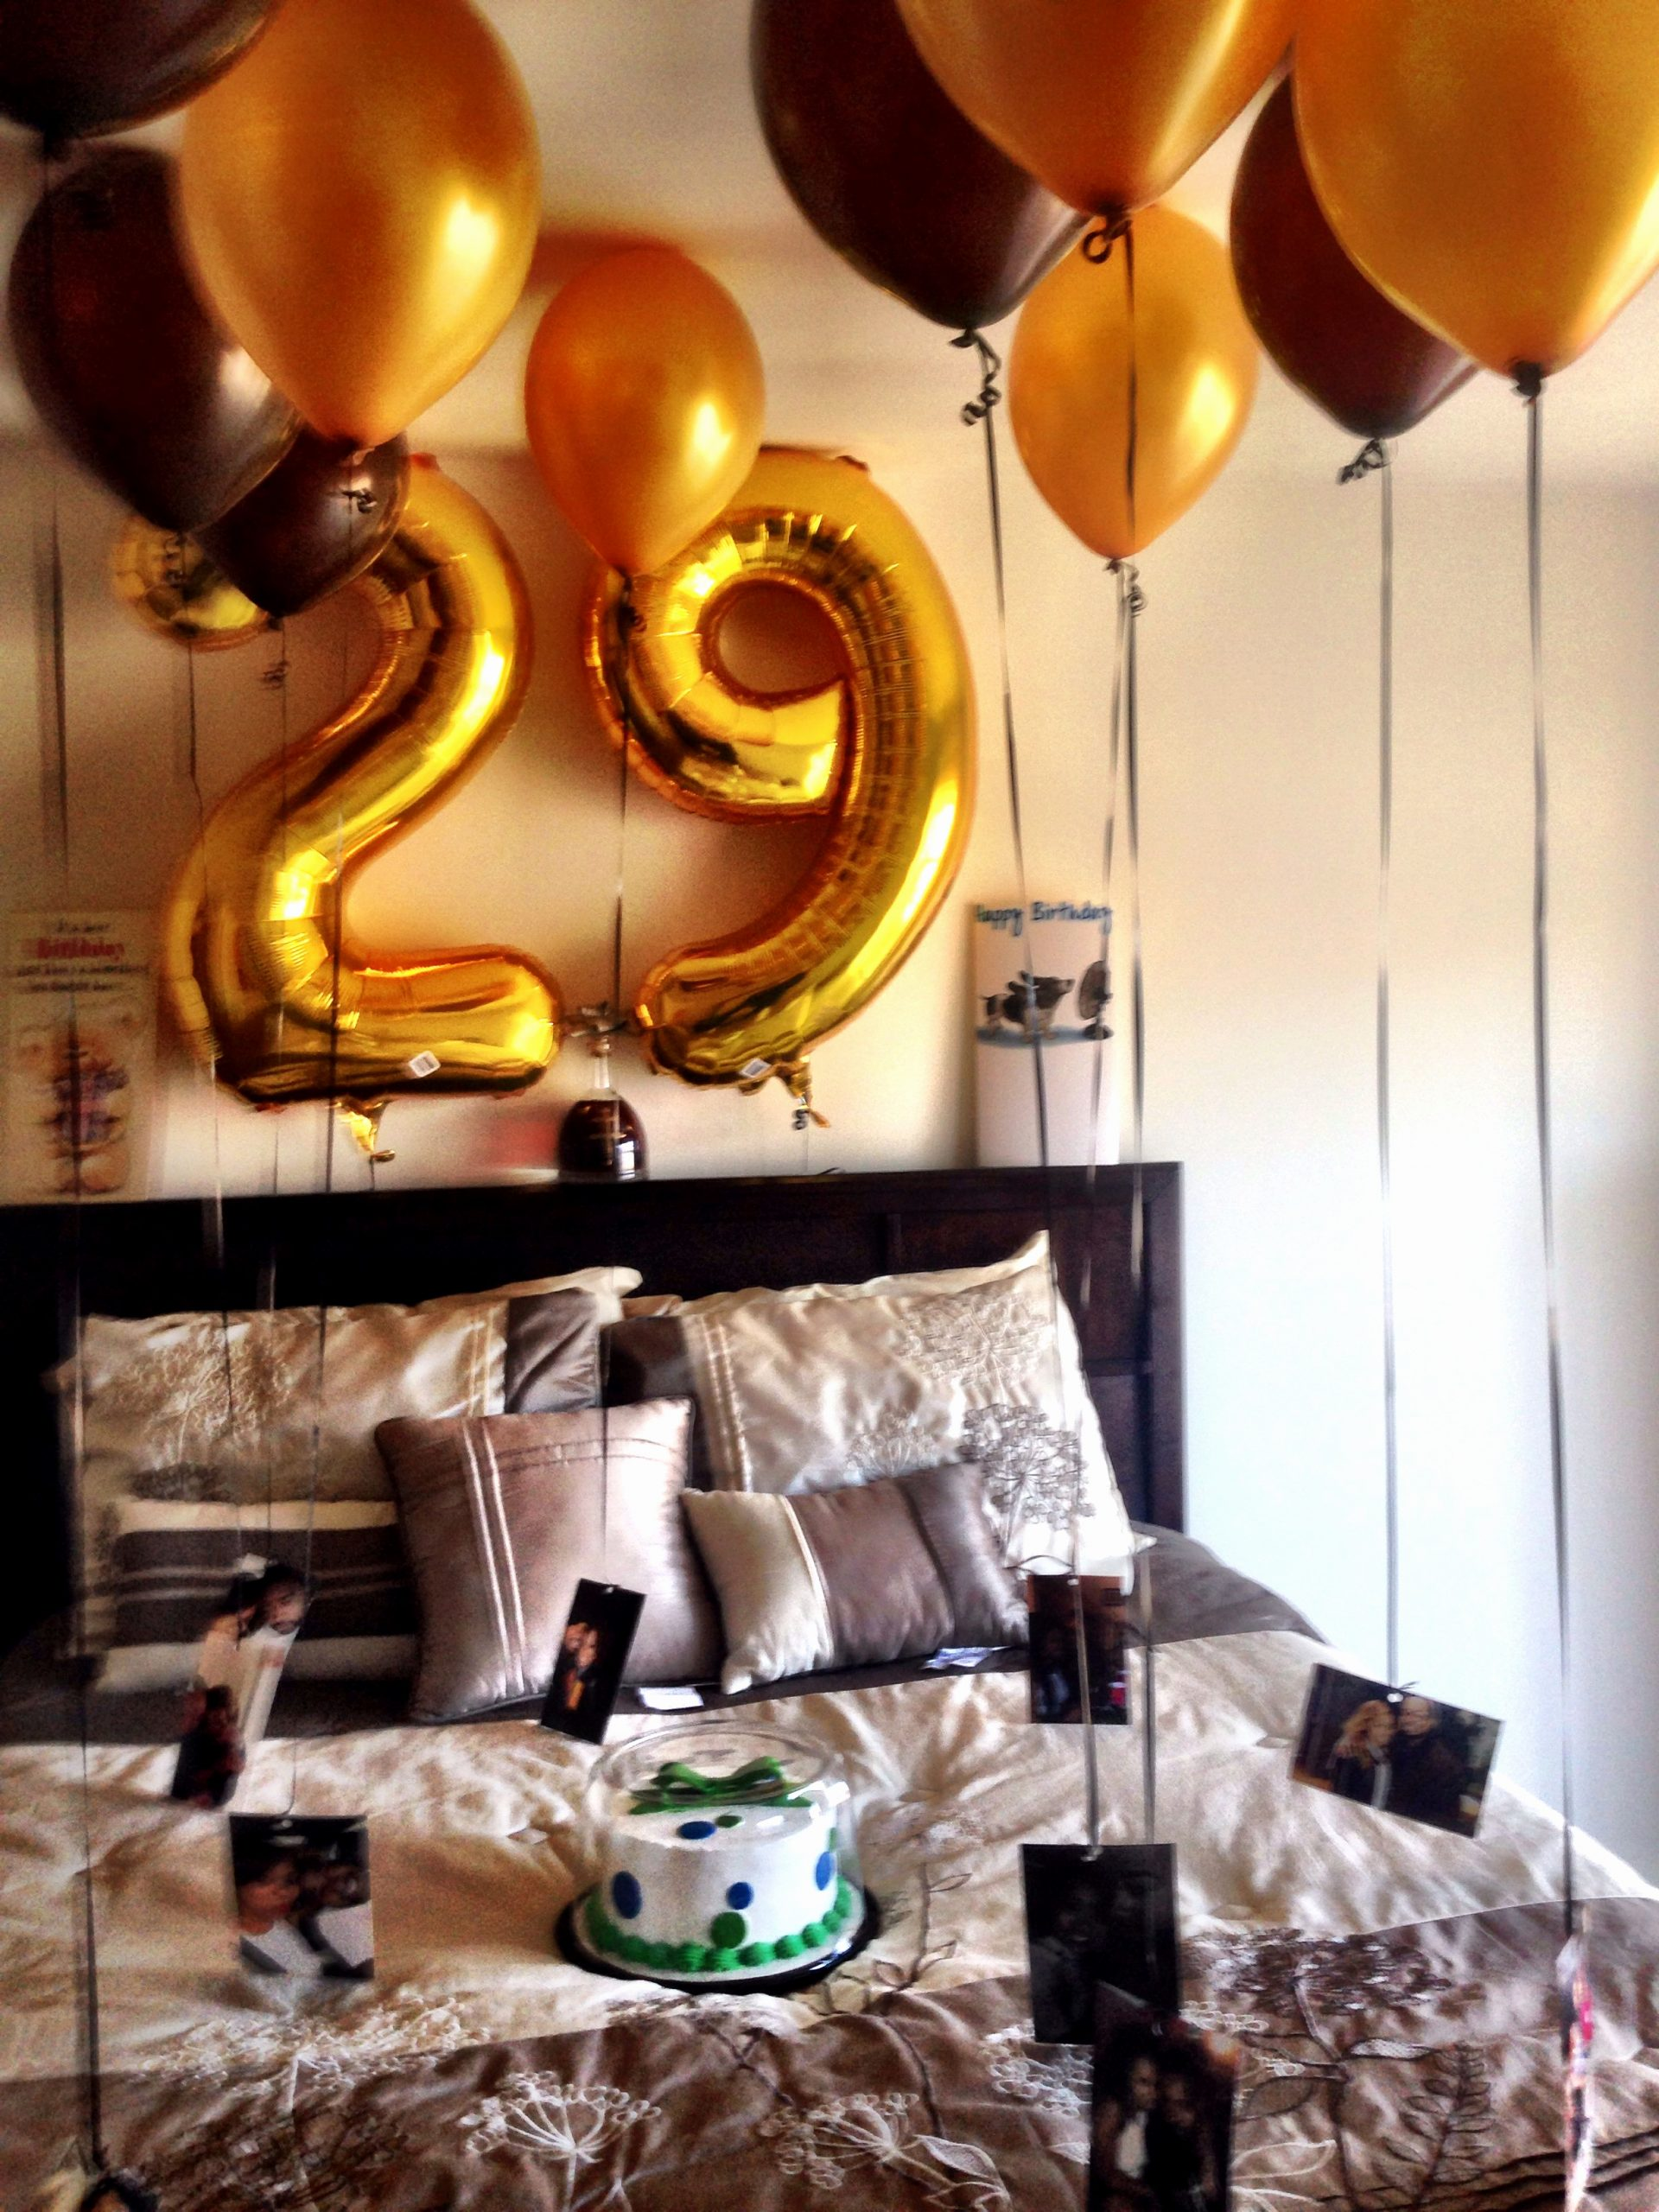 Birthday Decoration Ideas for Him at Home Beautiful Simple Birthday Decoration Ideas at Home for Boyfriend